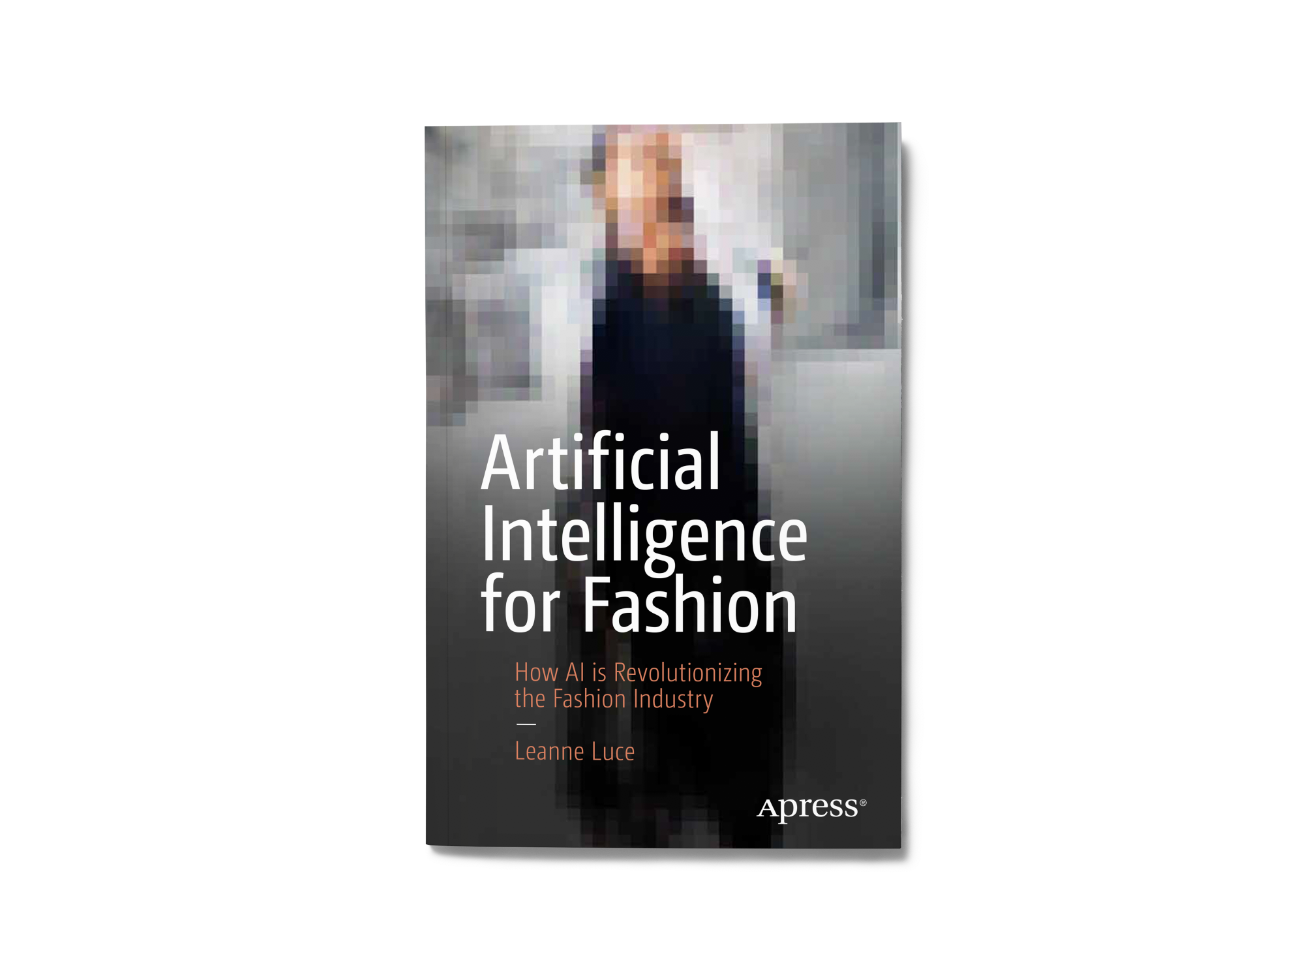 Artificial Intelligence for Fashion by Leanne Luce —Cover